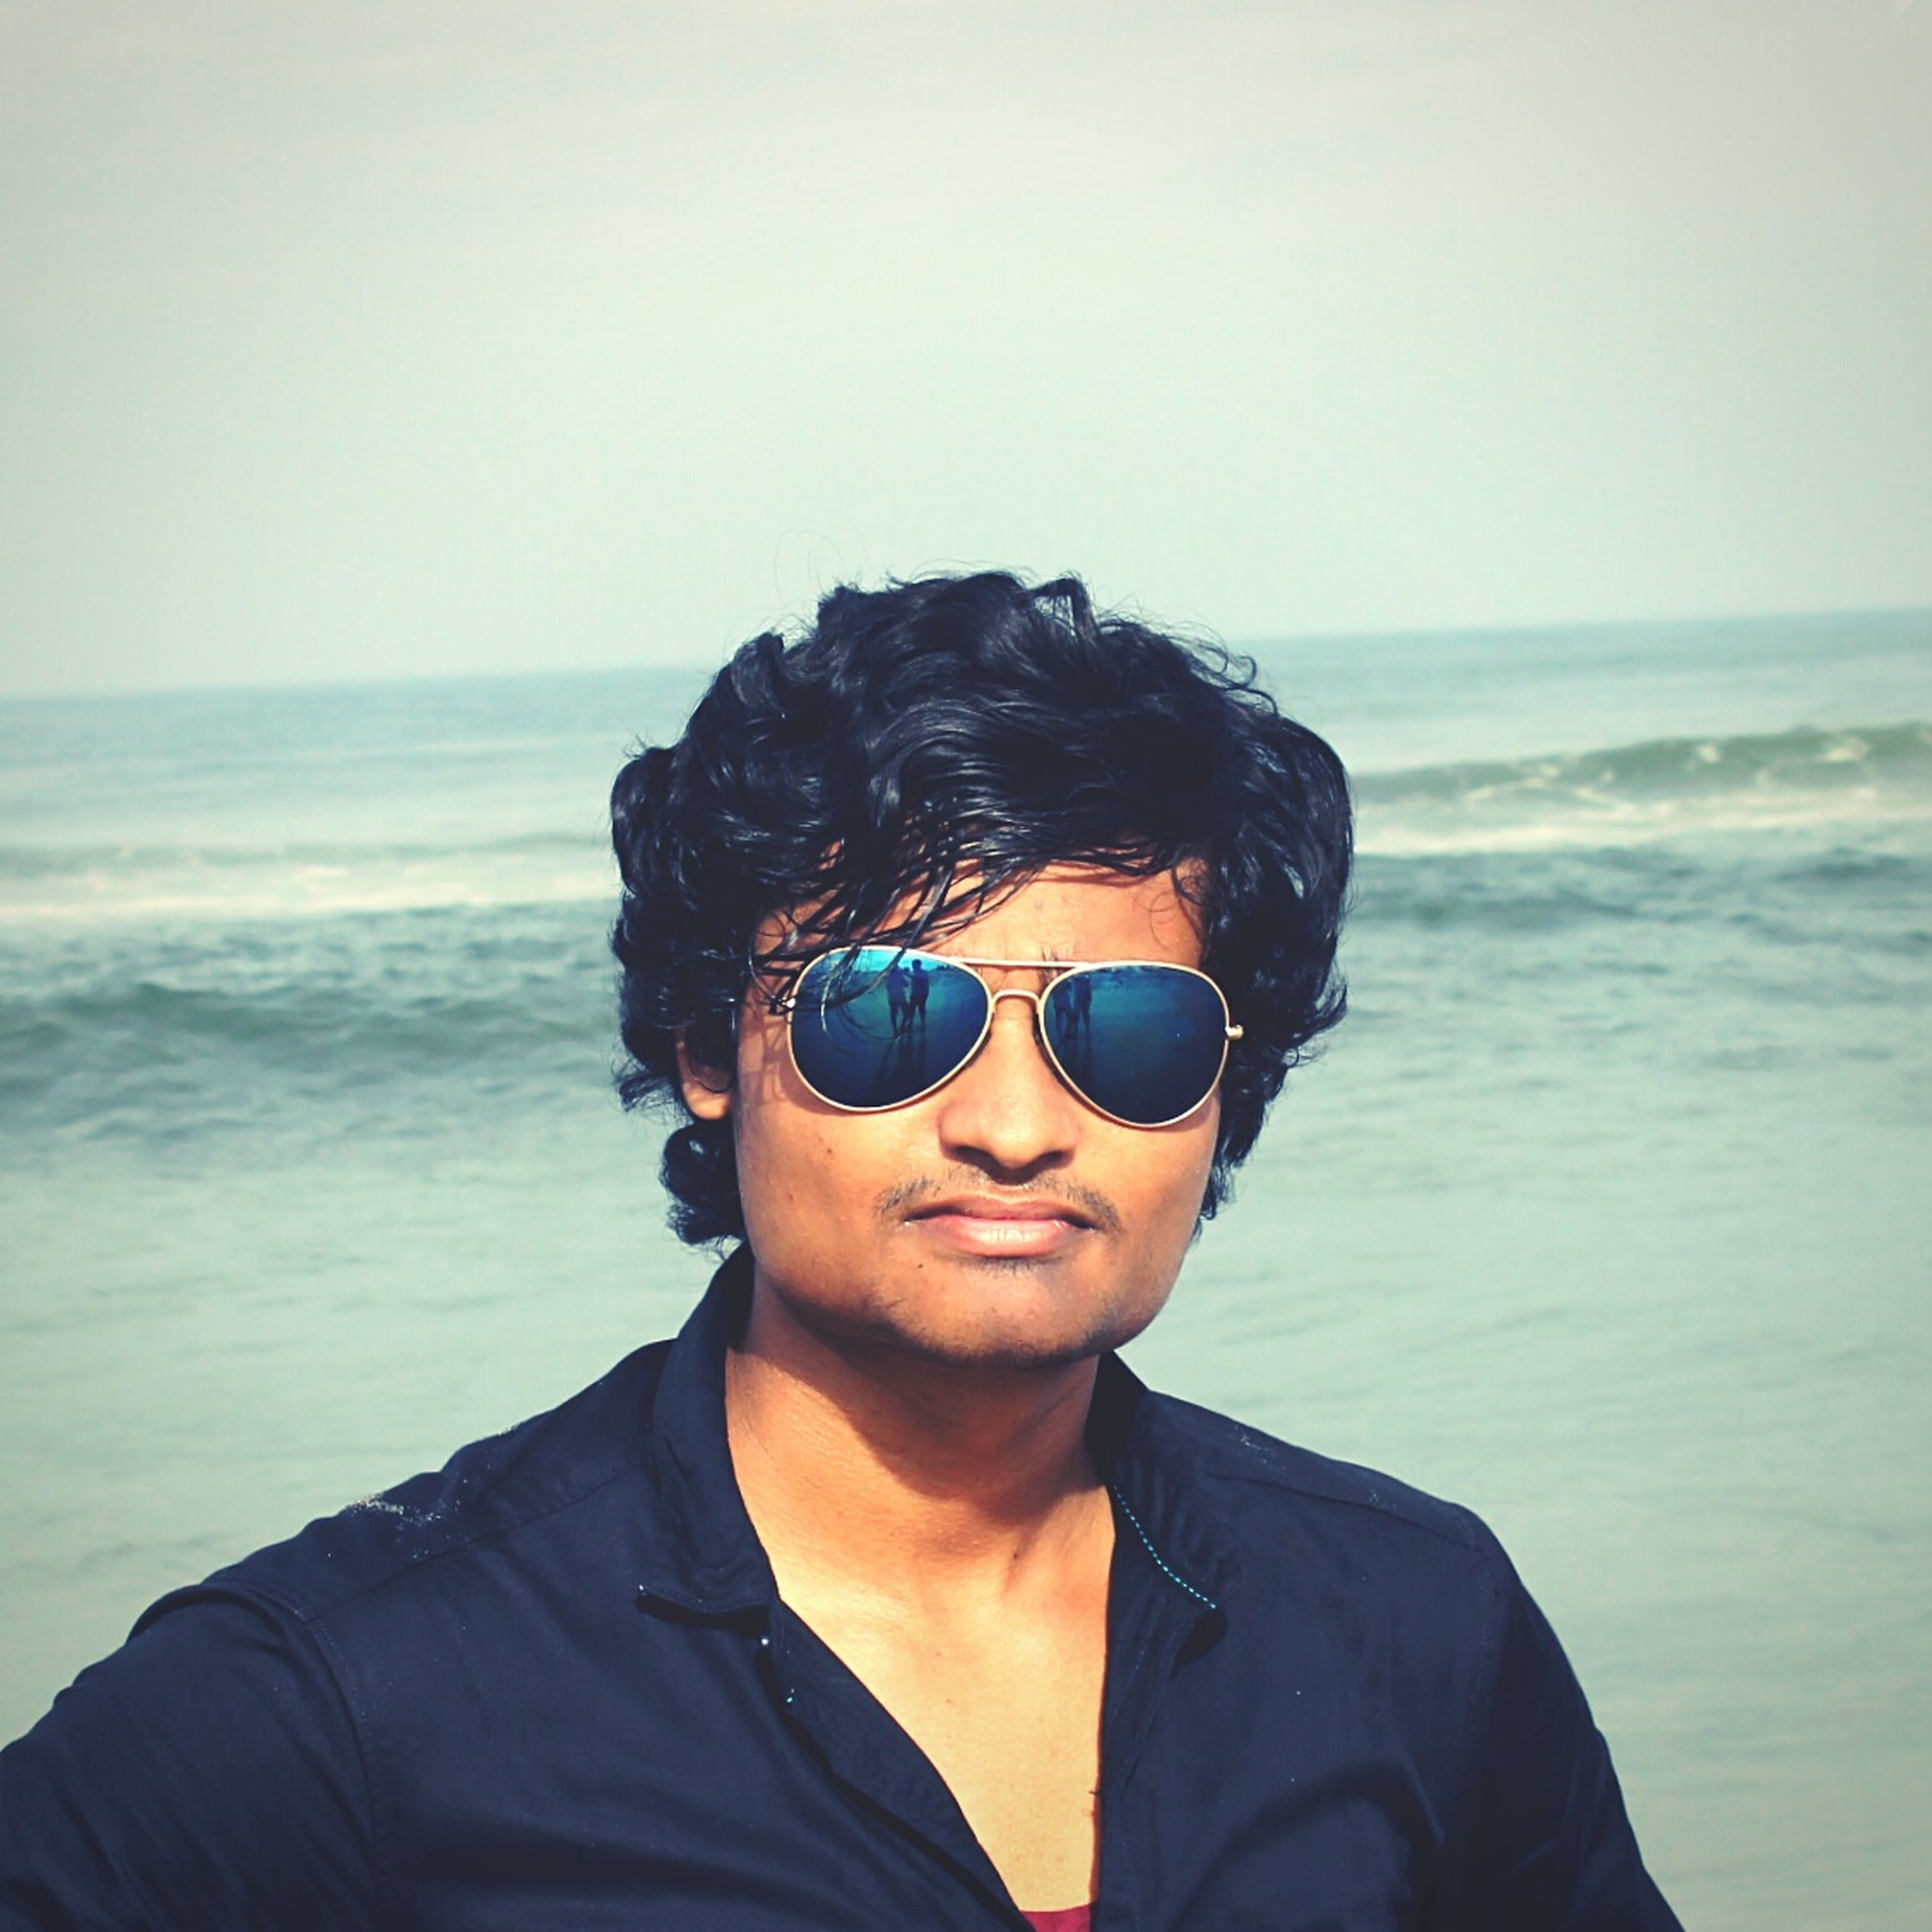 sea, young men, young adult, horizon over water, lifestyles, leisure activity, headshot, sunglasses, water, smiling, front view, casual clothing, clear sky, looking at camera, handsome, person, tranquility, scenics, nature, relaxation, summer, sunny, beauty in nature, focus on foreground, tranquil scene